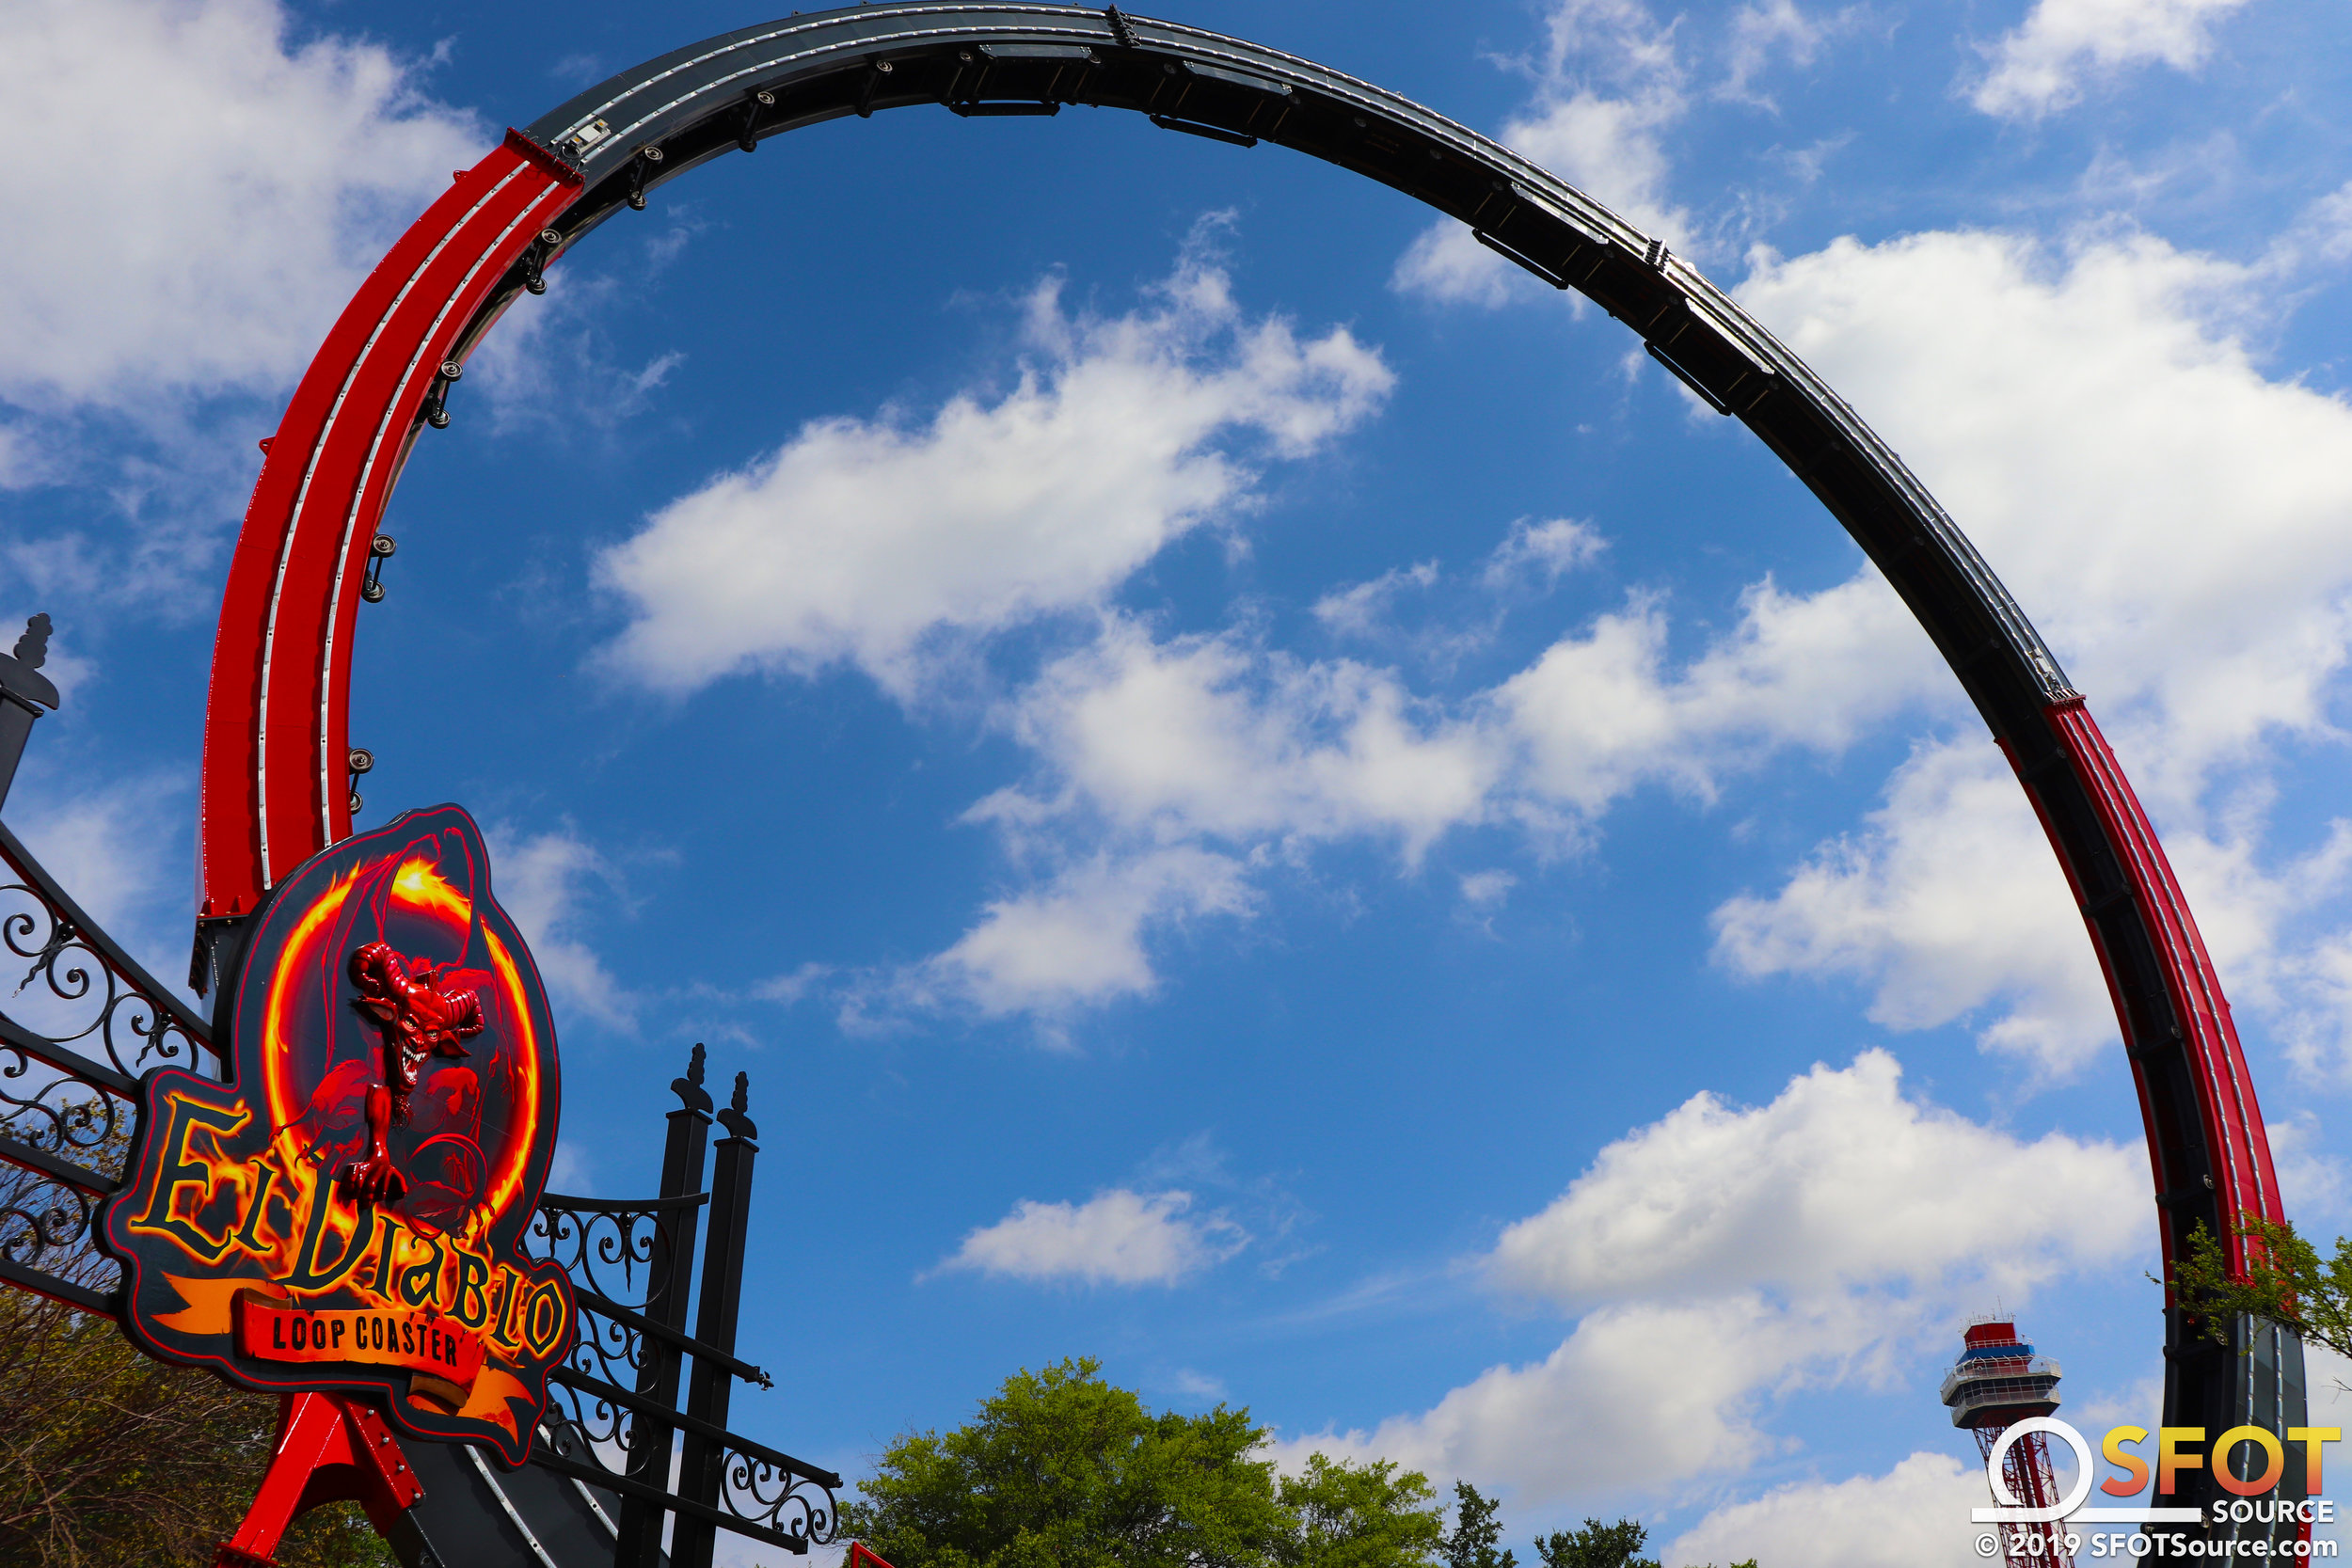 El Diablo is the Spain area's first new attraction since 2006.